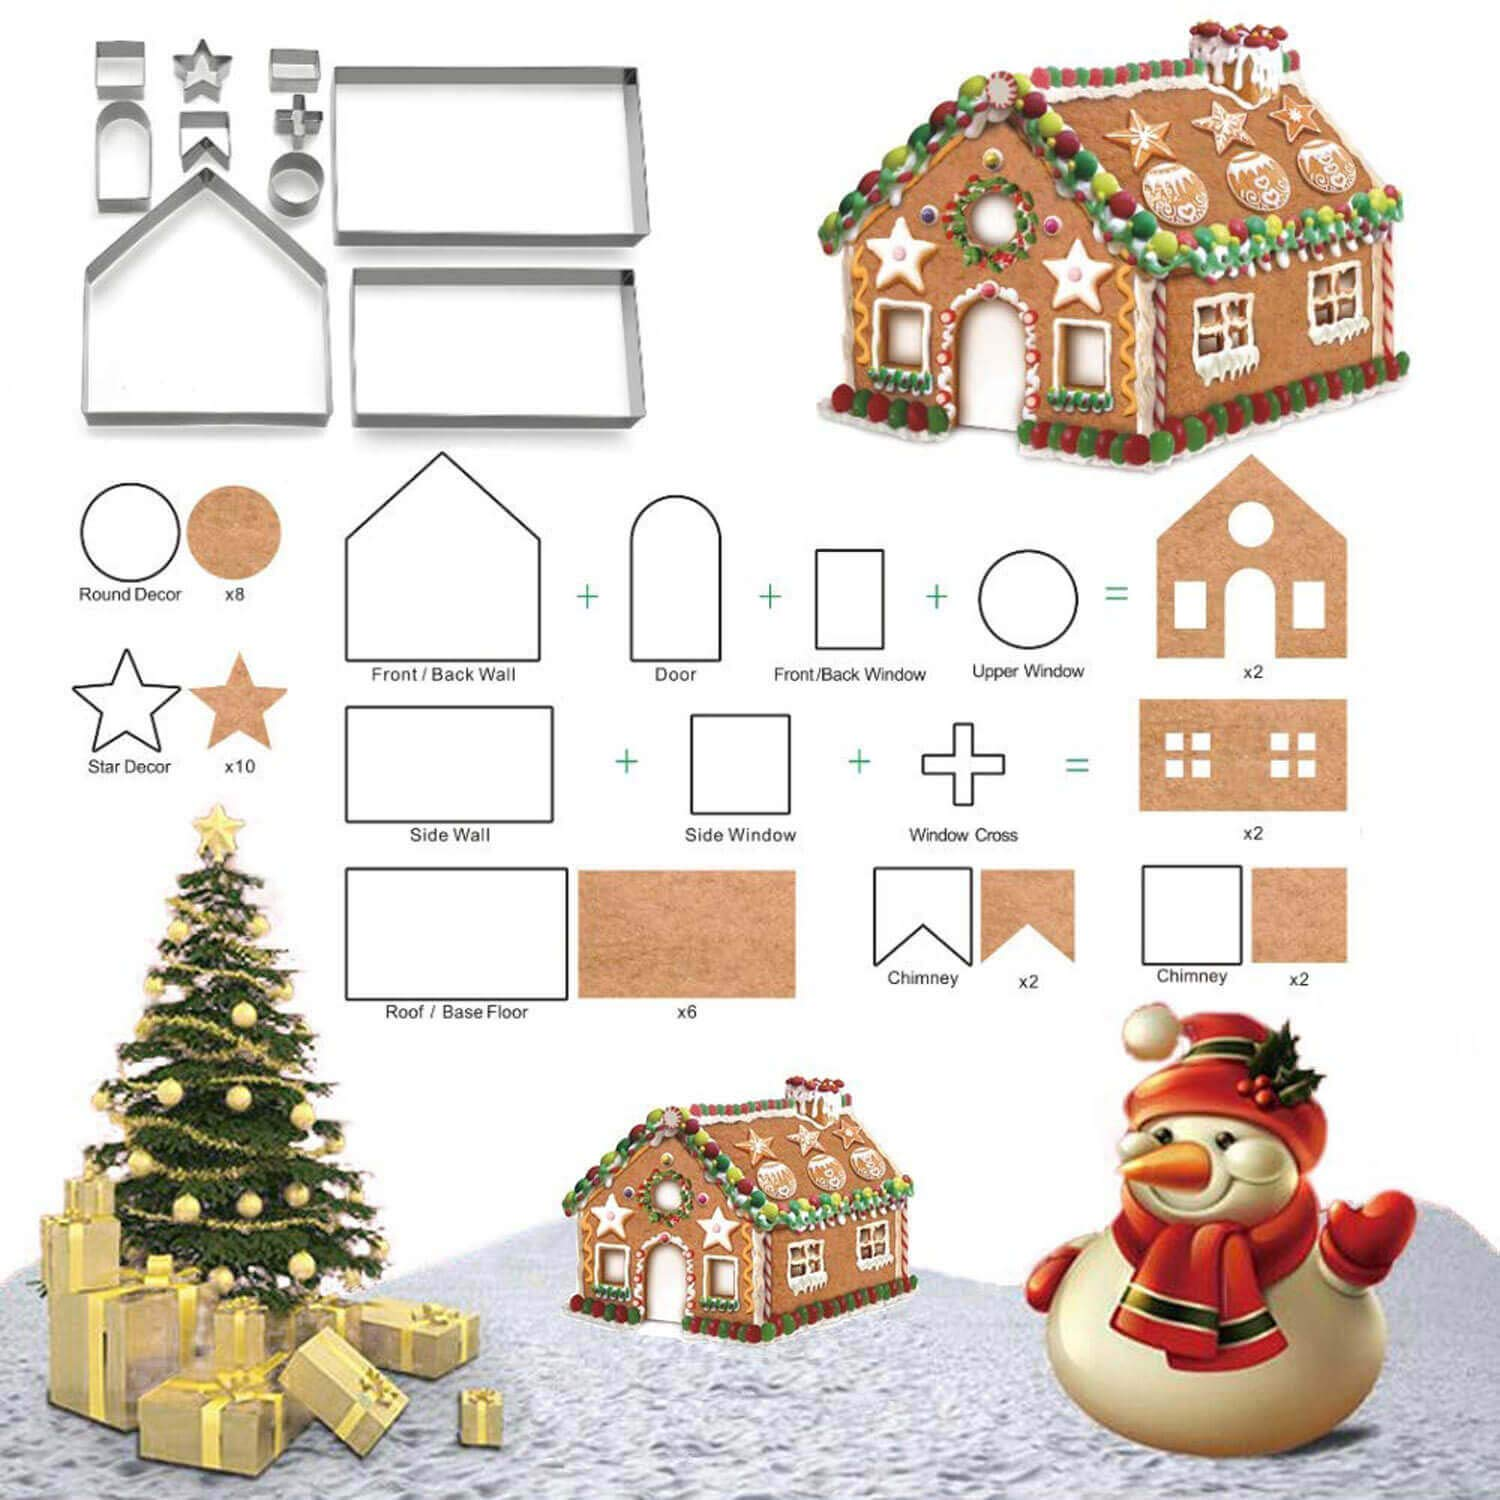 3D Christmas Gingerbread House Cookie Cutters for Holiday Winter & Christmas Cutters Kit, Gift Box Packaging 10 Pieces Set Yakin shop